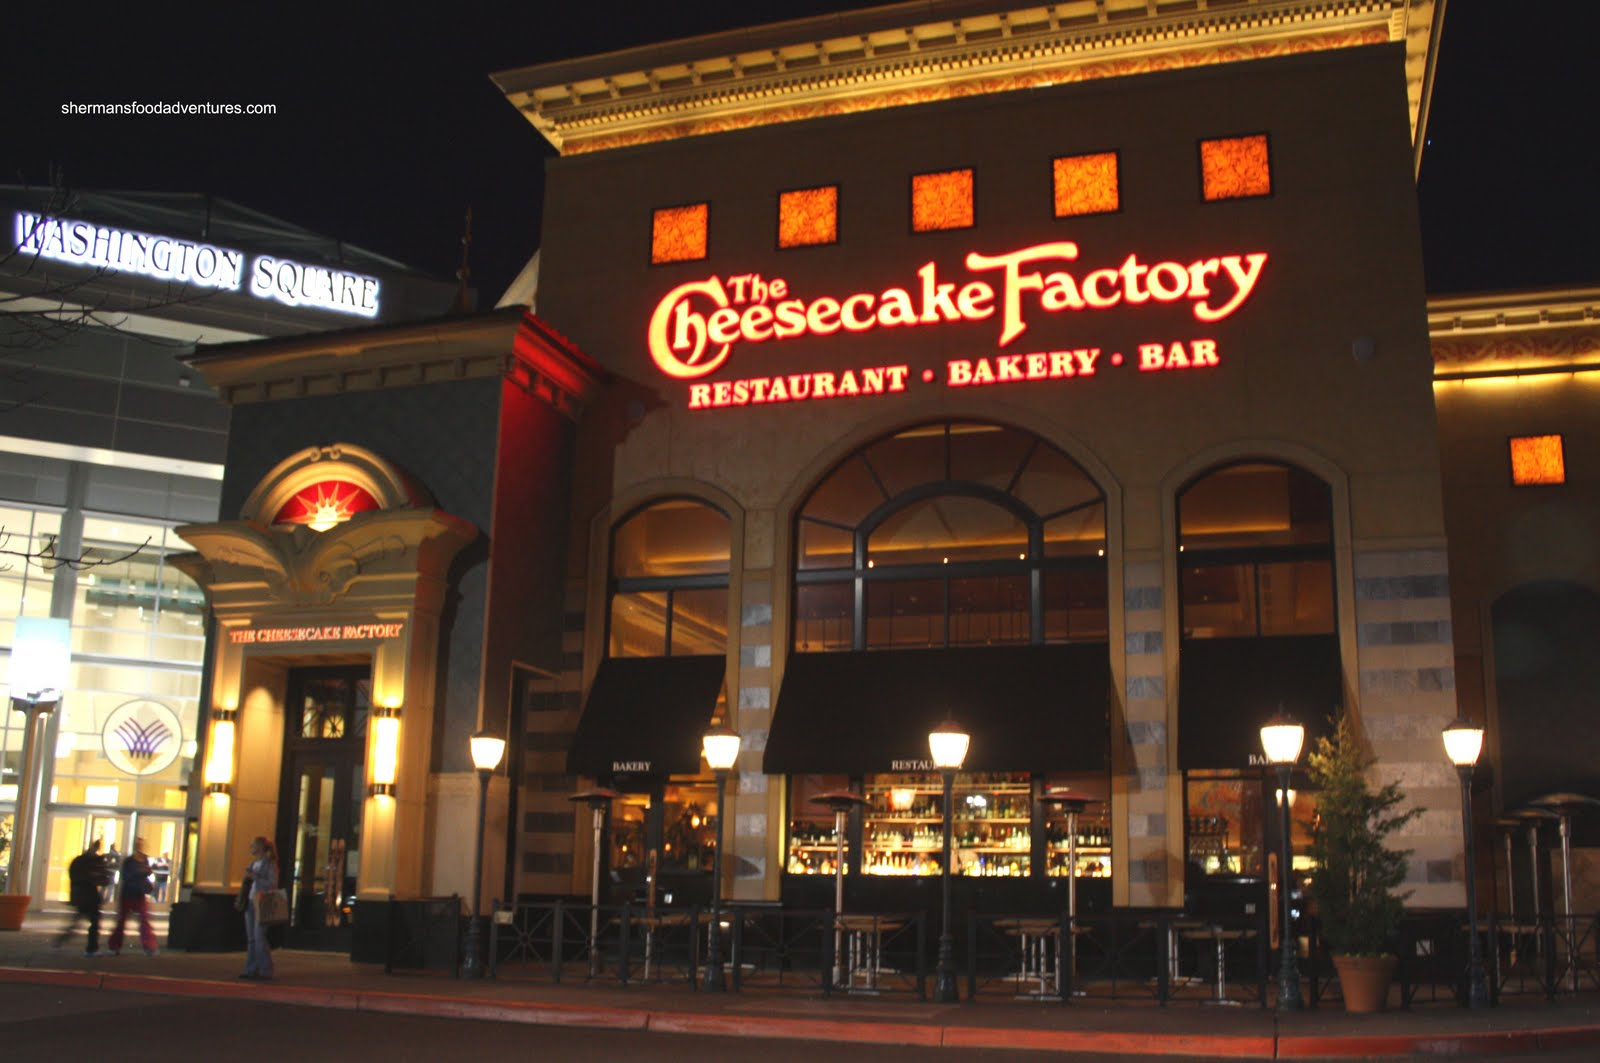 cheesecake factory - photo #4